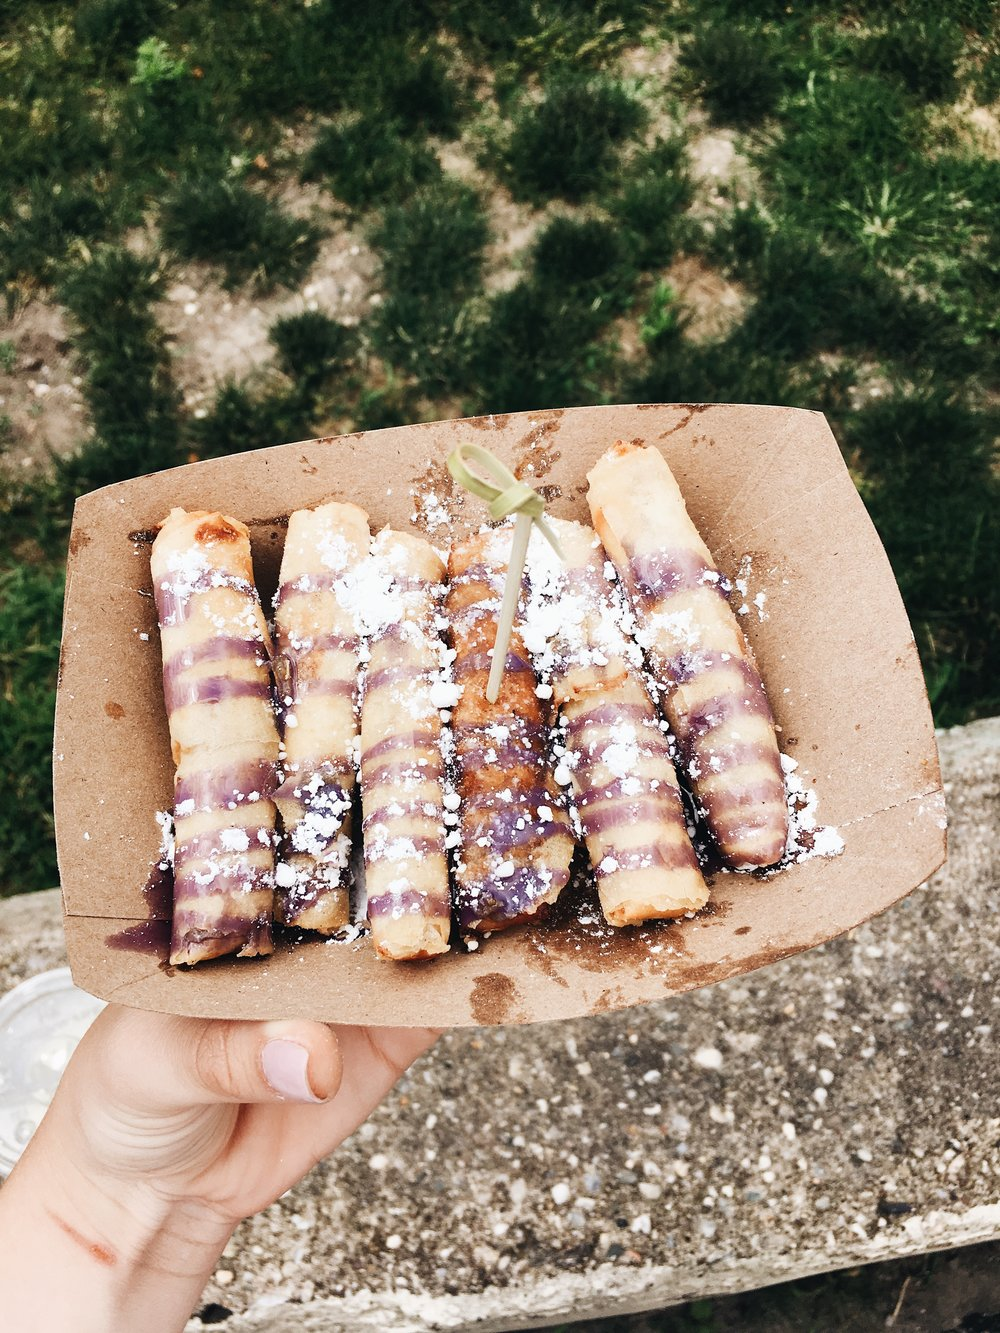 turon- a filipino fried spring roll filled with sweet plantains topped with ube drizzle and powdered sugar